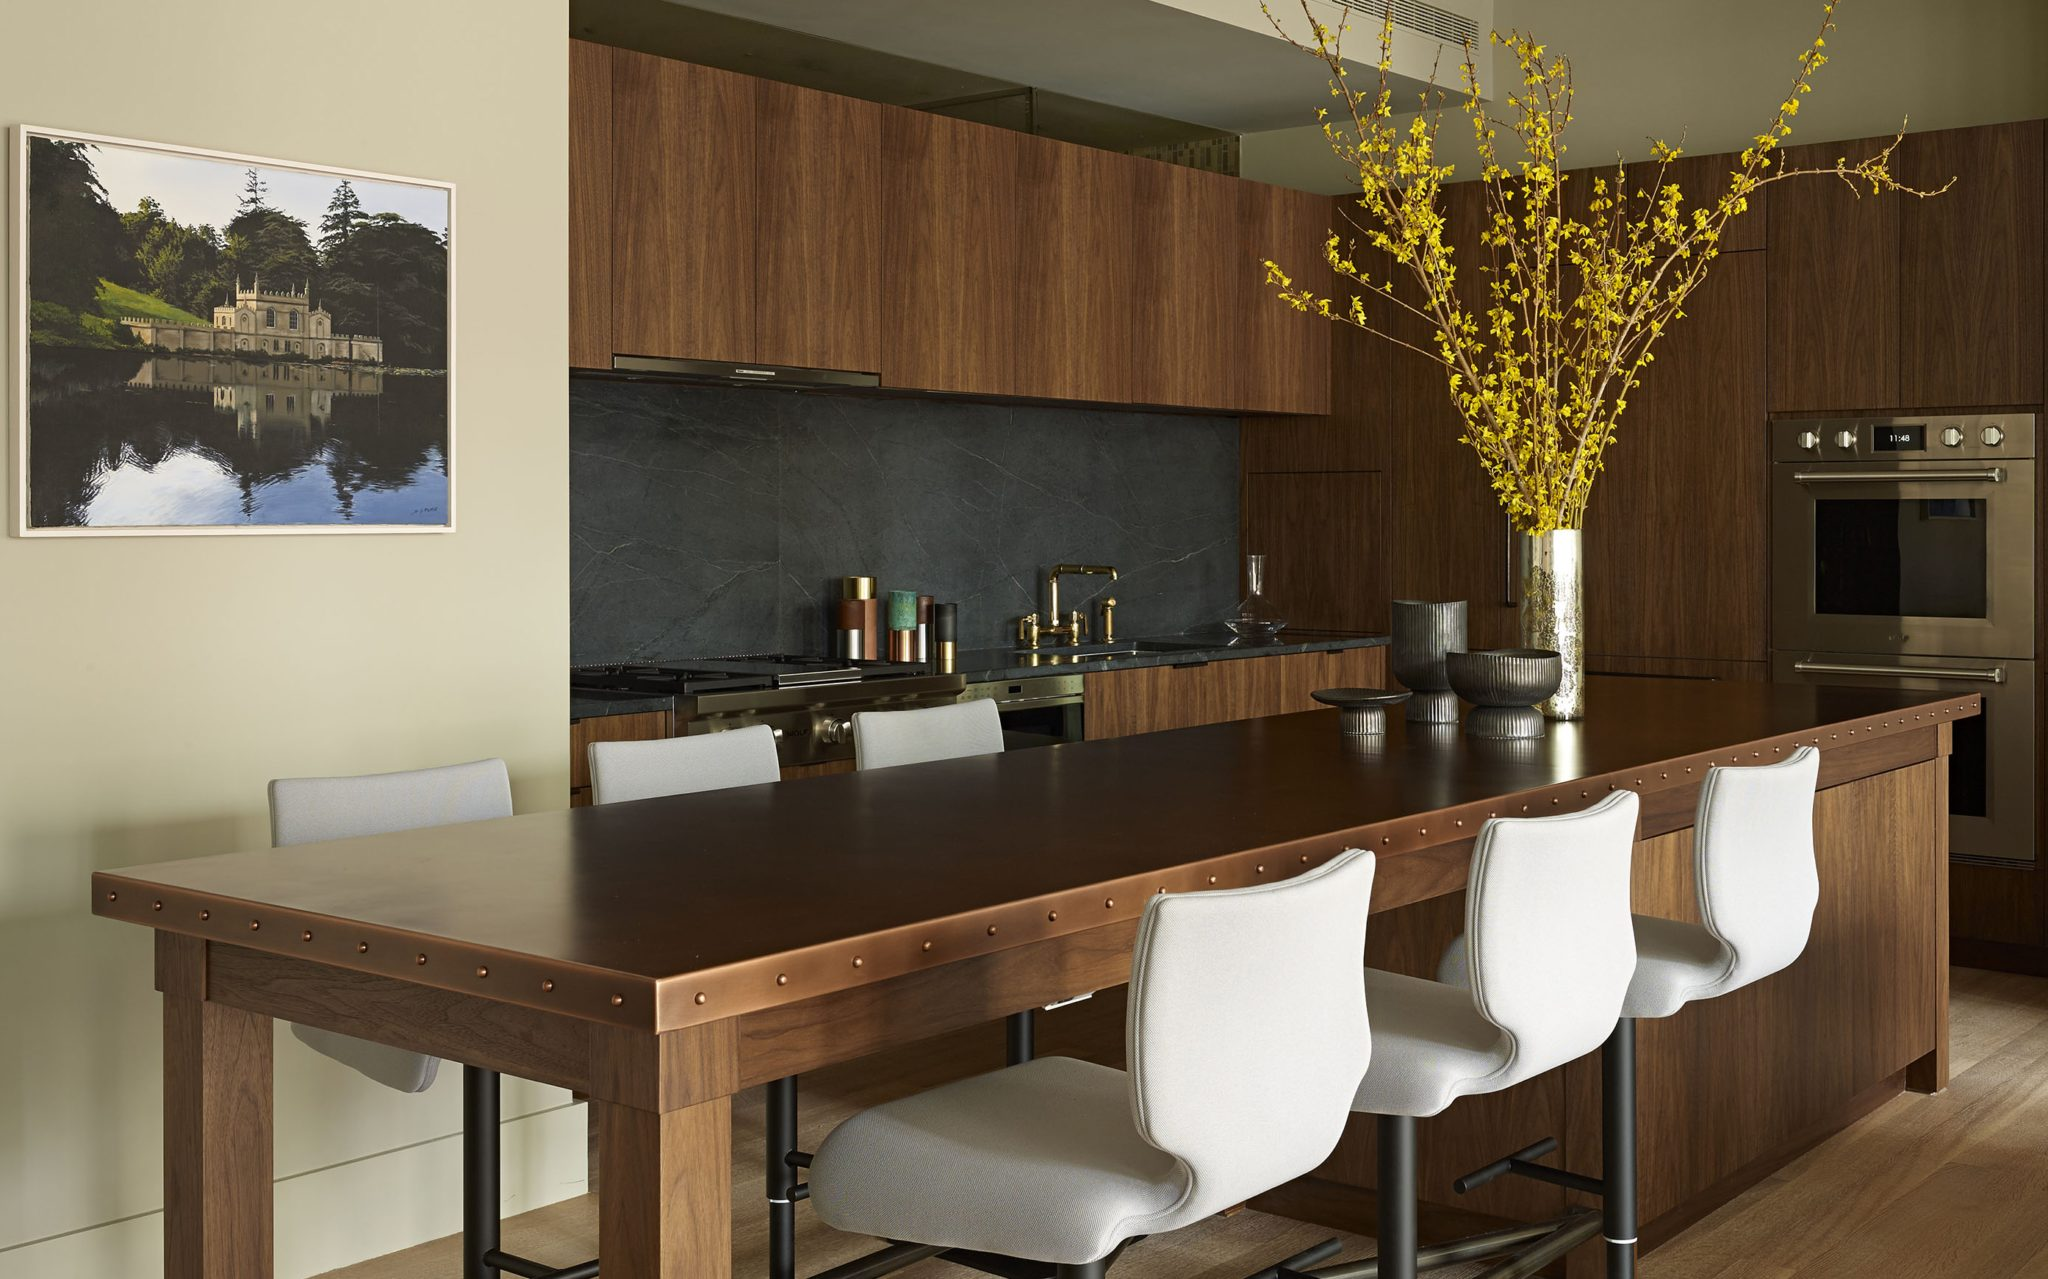 A stylish kitchen with sleek wood finishes by Frampton Co